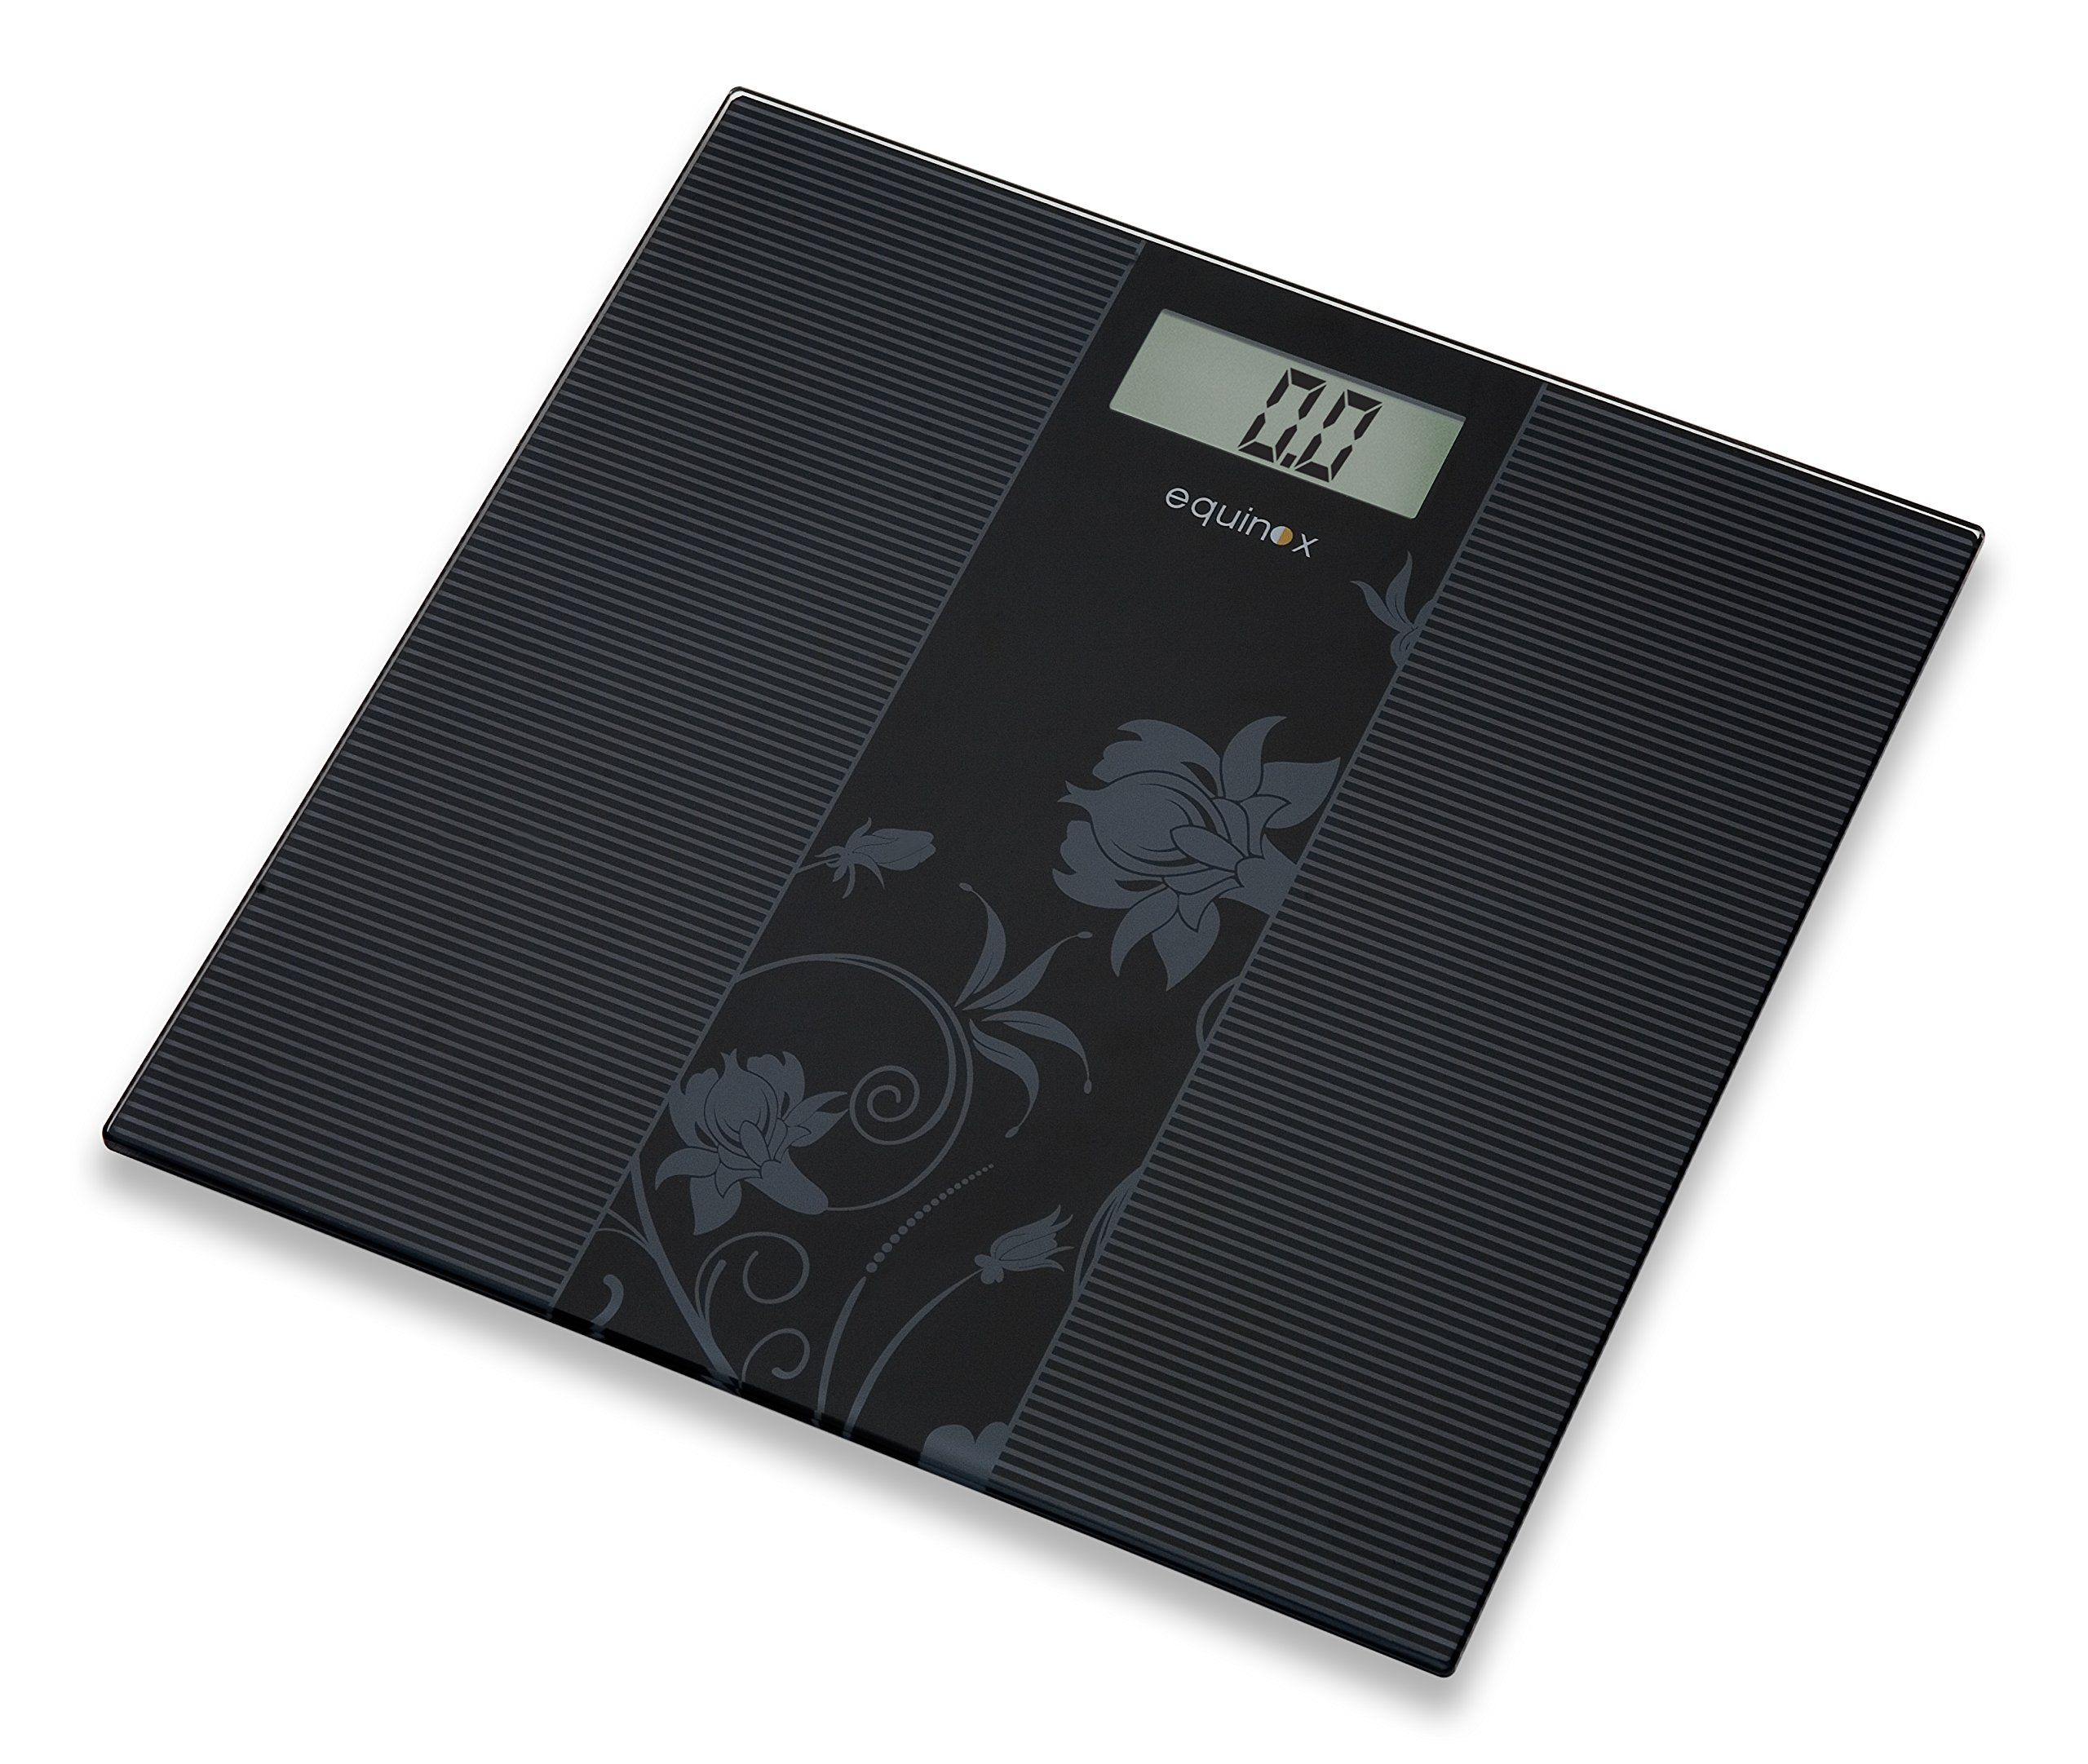 kitchen mainstays digital walmartcom scales steel complete scale walmart ideas example bathroom stainless